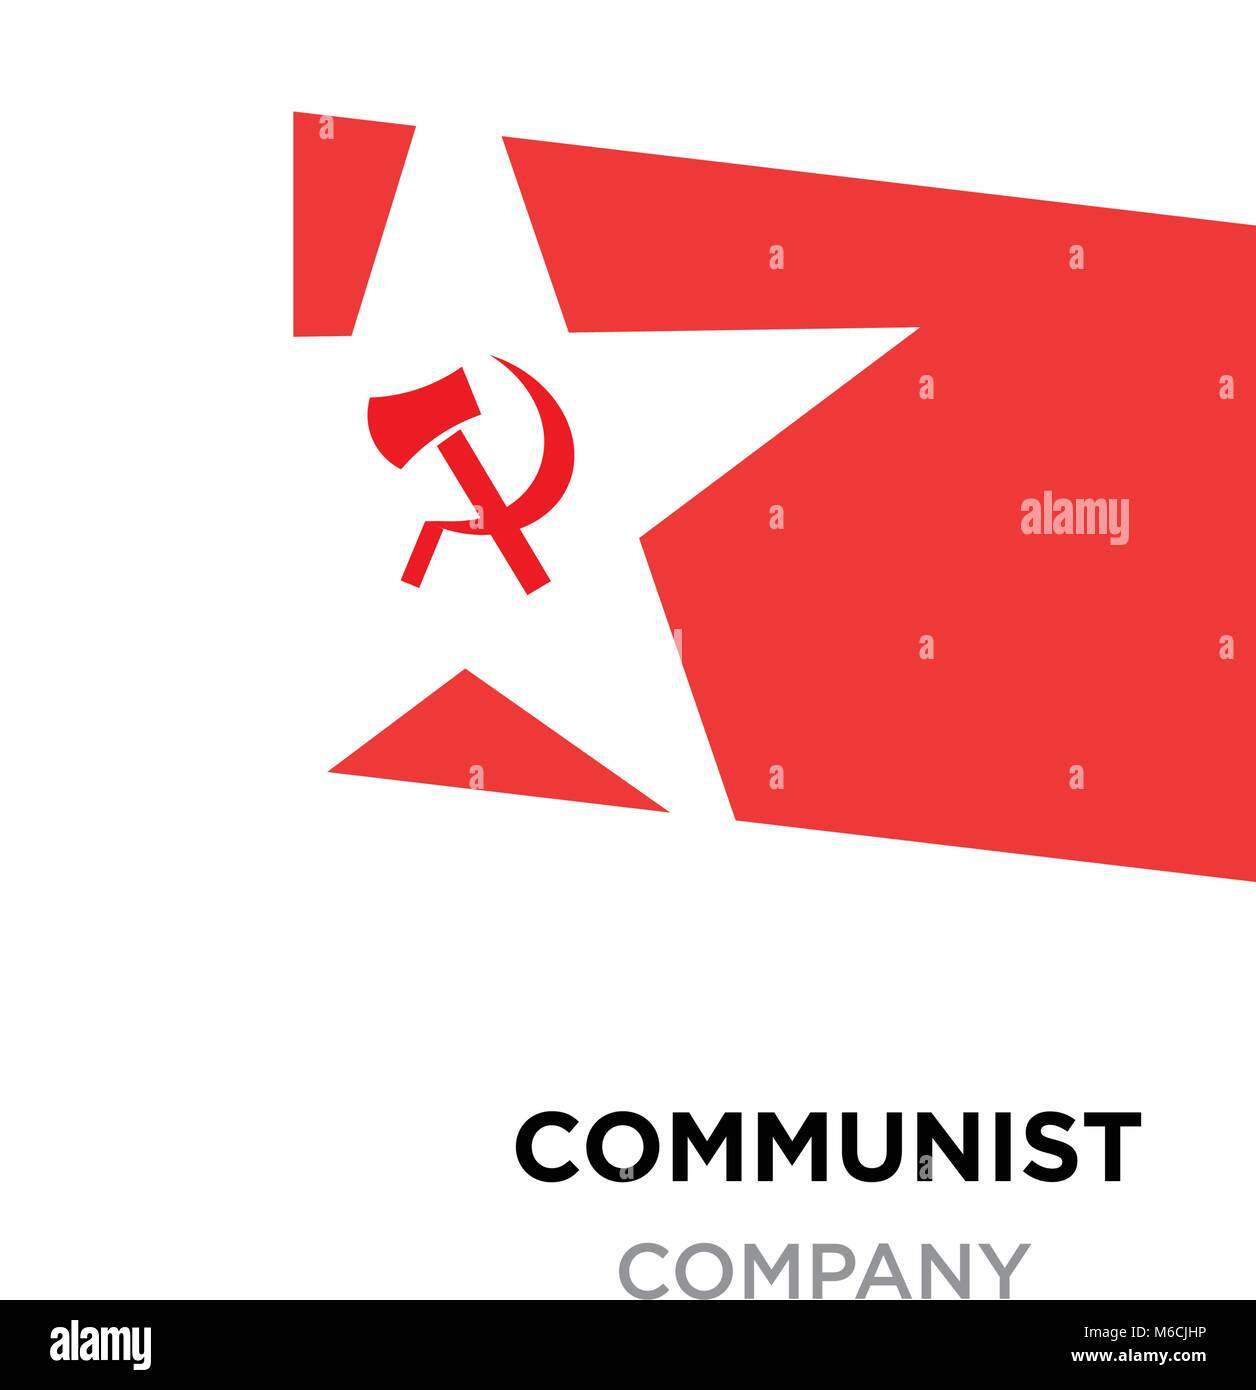 Communist logoussr communism icon with red hammer and sickle stock communist logoussr communism icon with red hammer and sickle socialism symbol inside white star buycottarizona Gallery